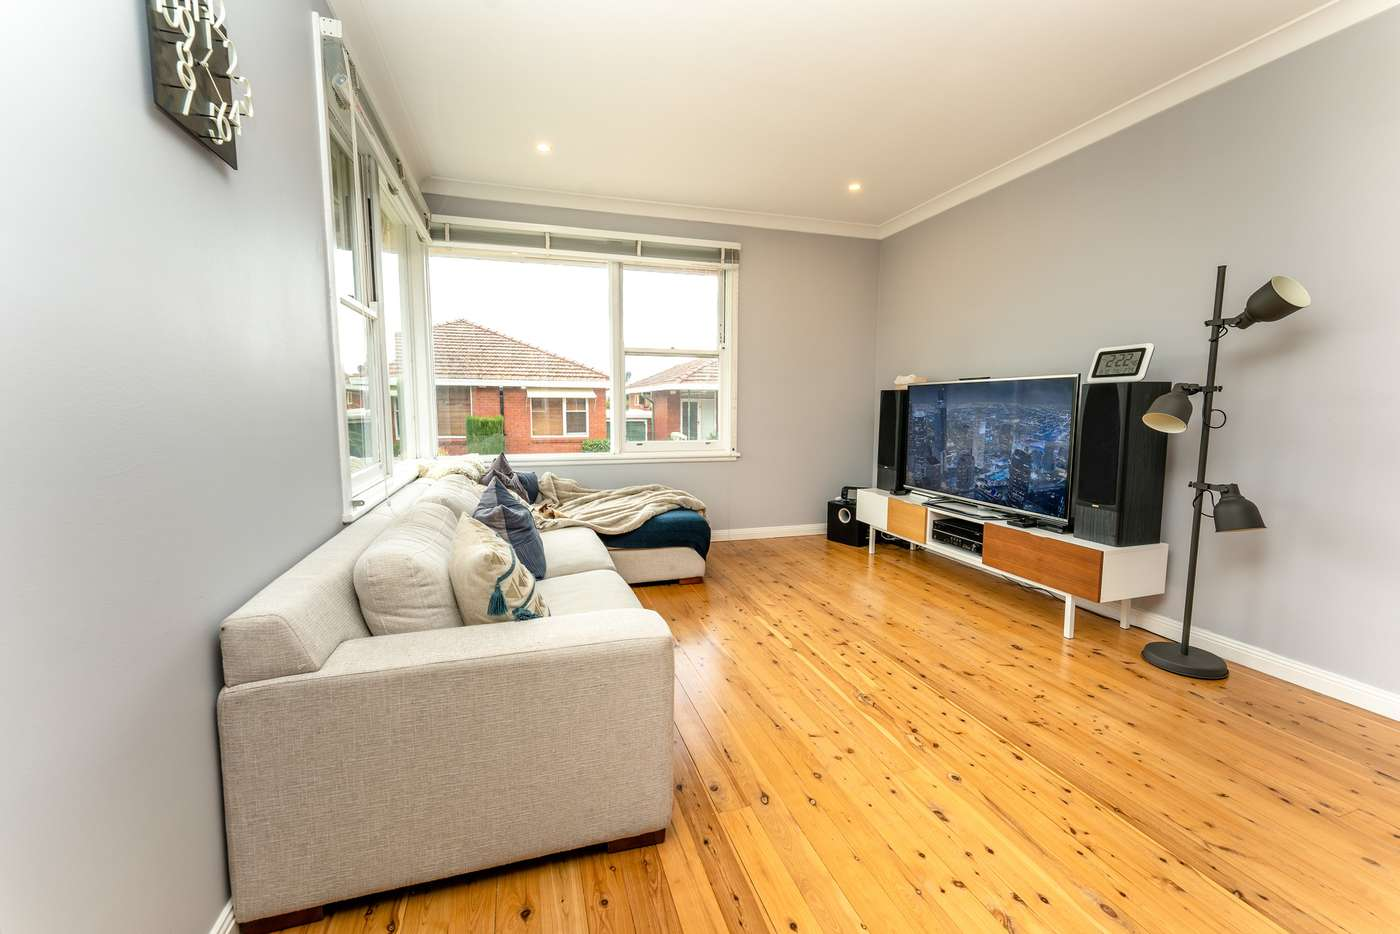 Sixth view of Homely villa listing, 3/6 Douglas Street, Bardwell Valley NSW 2207